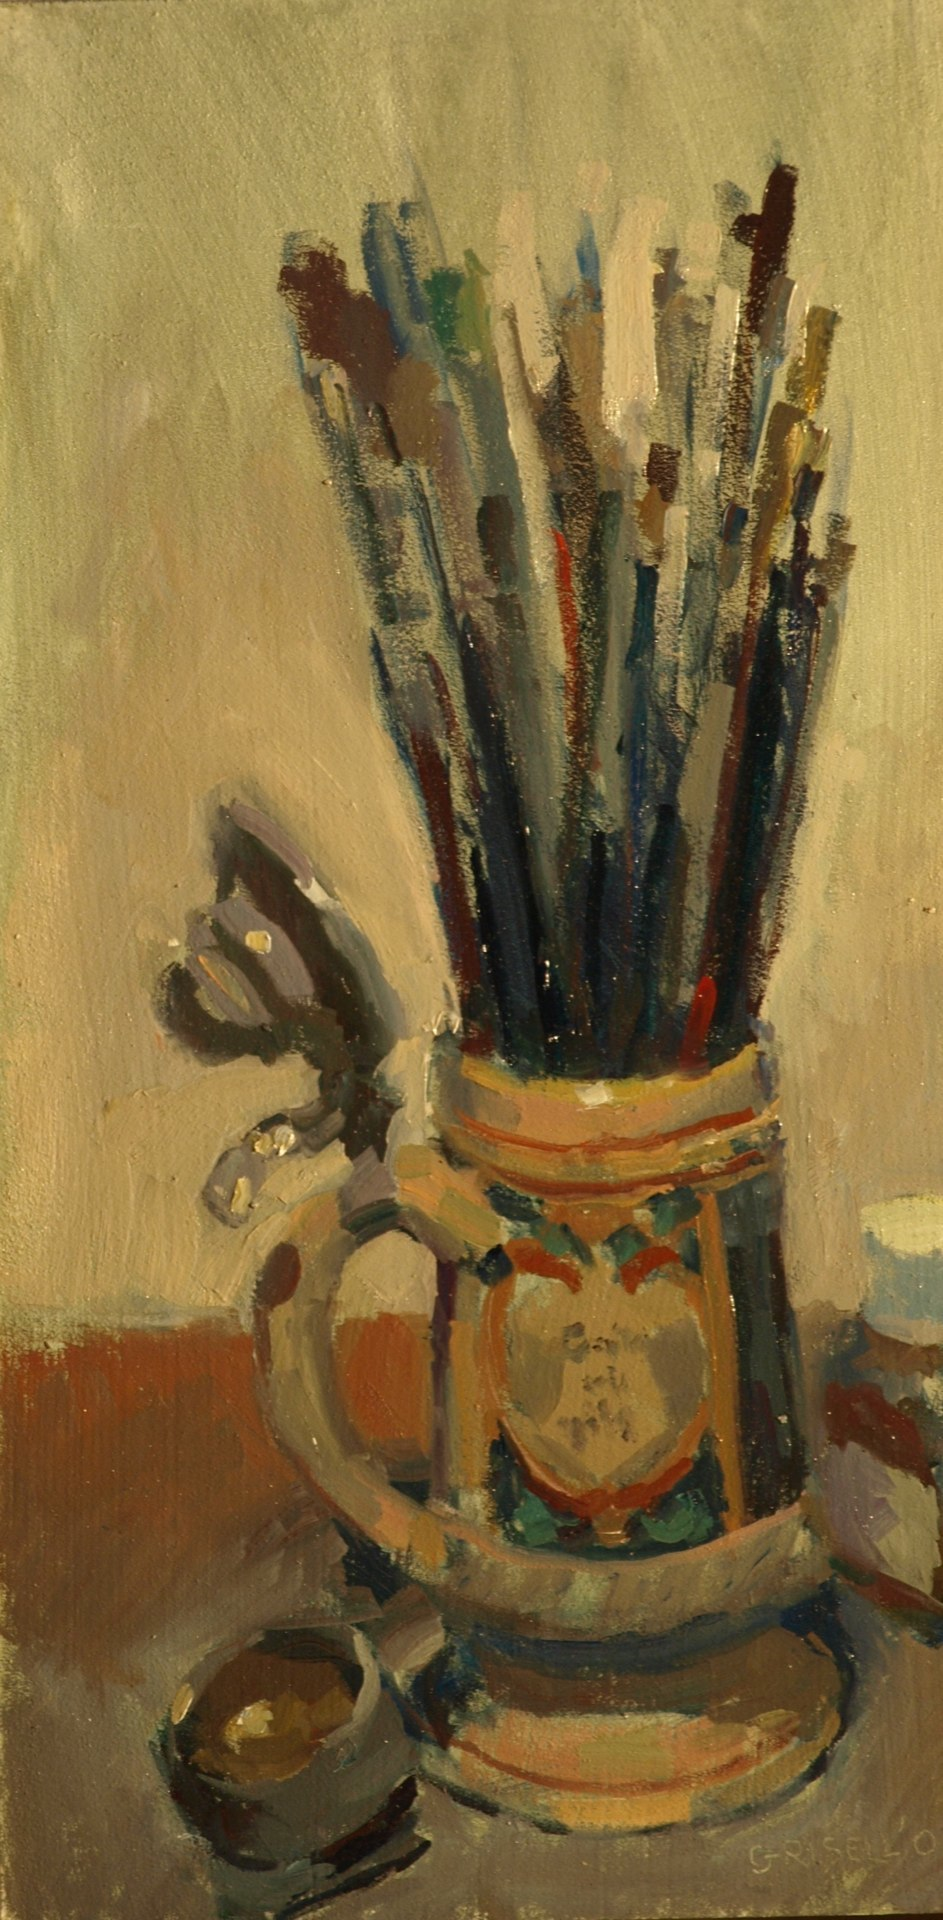 Brushes and Beer Stein, Oil on Panel, 16 x 9 Inches, by Susan Grisell, $250